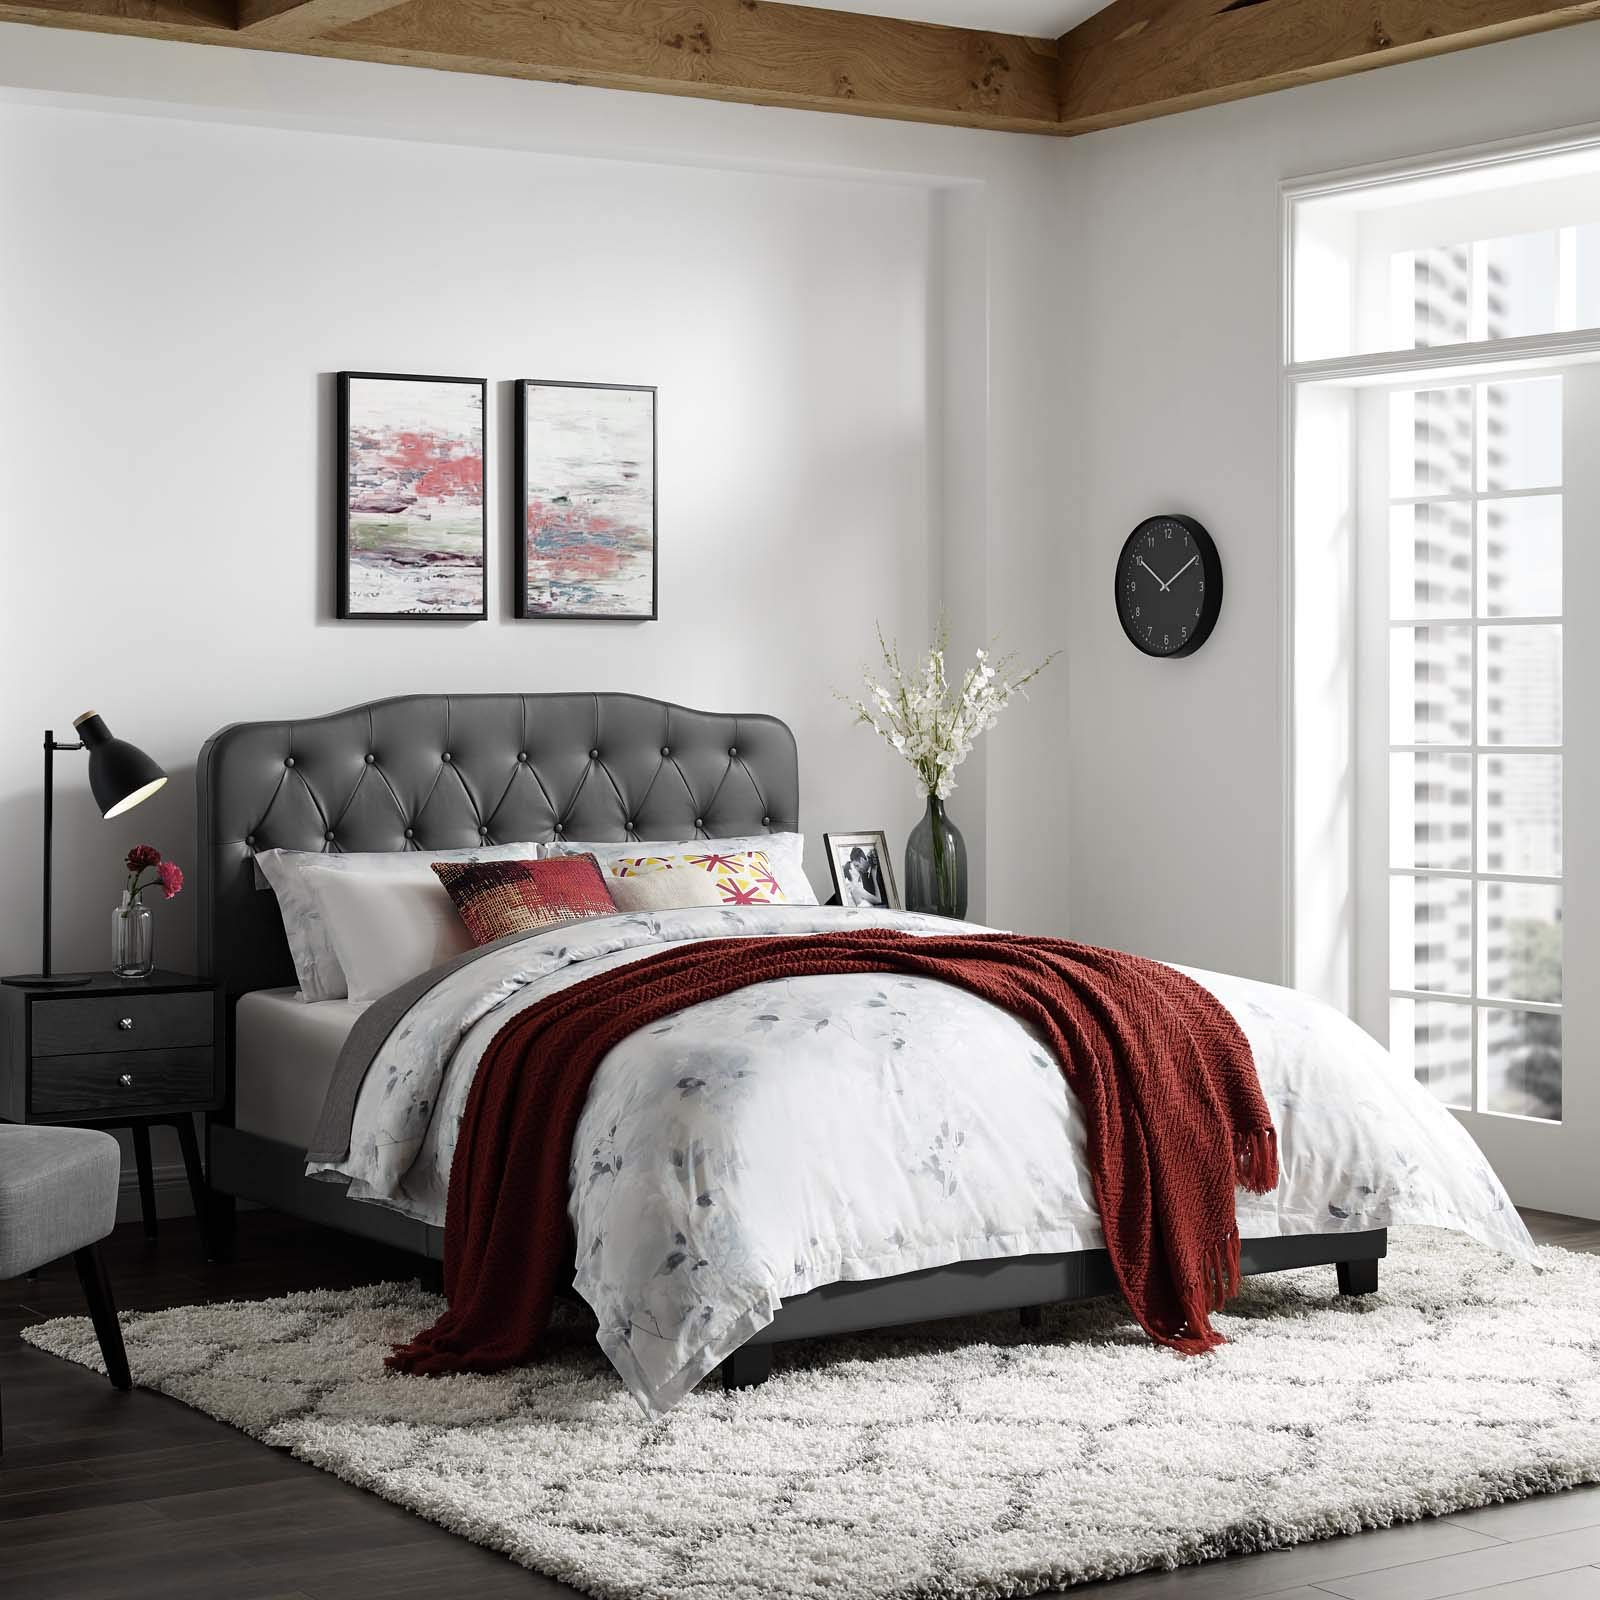 Modway MOD-5990-GRY Amelia Twin Faux Leather Bed, Gray by Modway